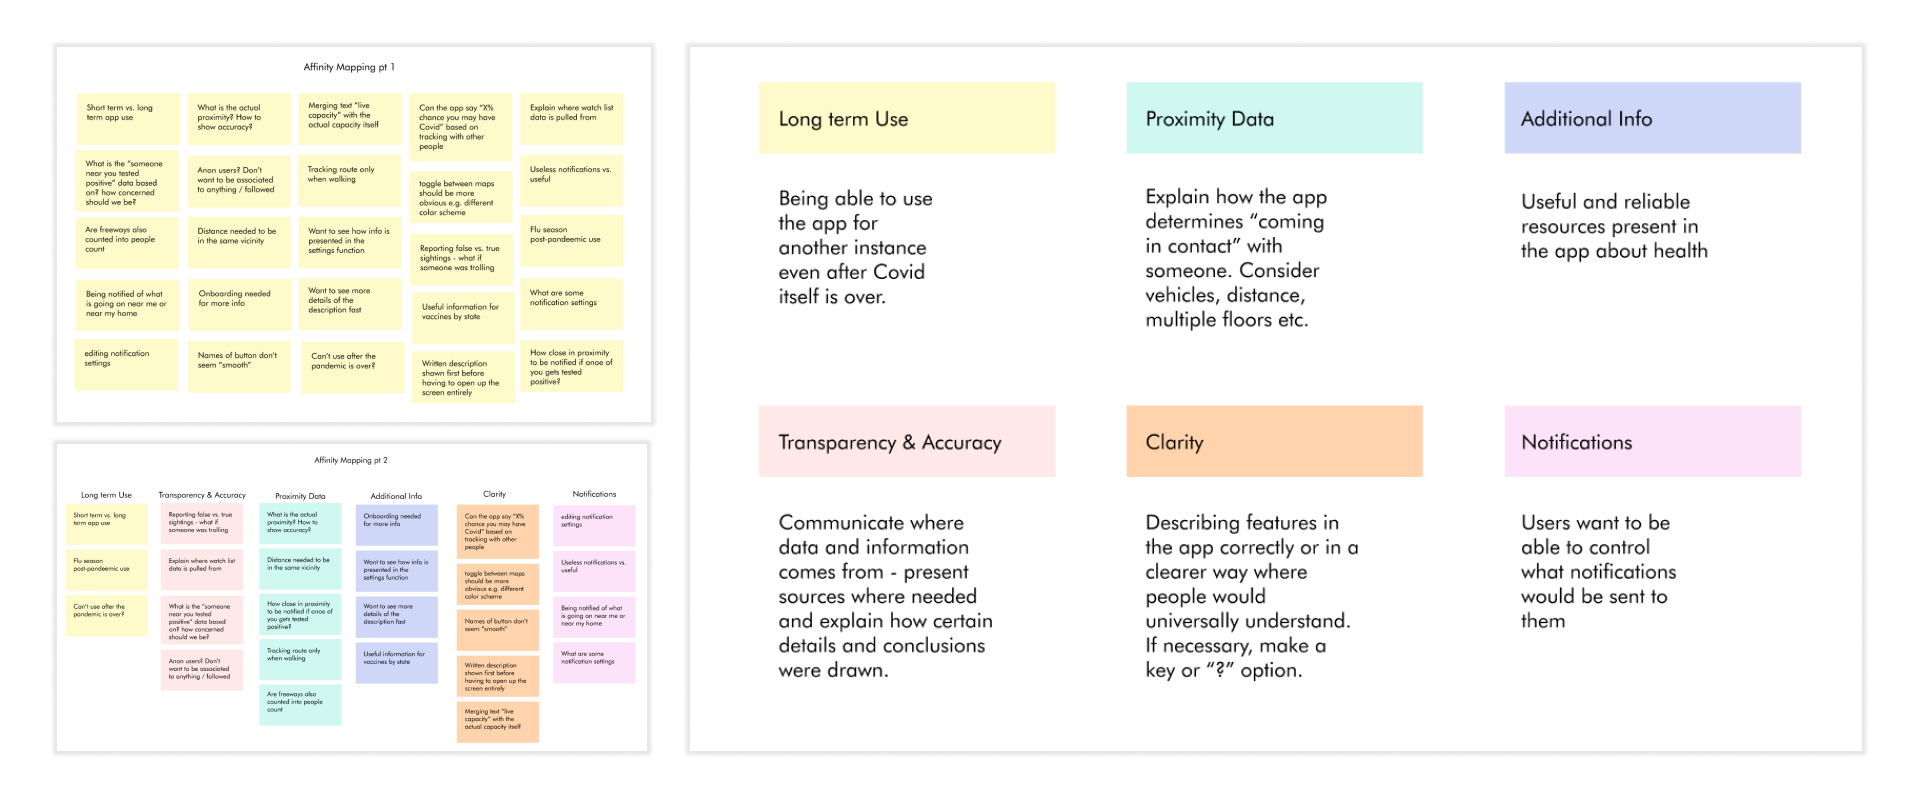 Affinity mapping synthesis with Think Aloud sessions on five users for all of my prototypes. This example is the synthesis I did for my Lofi prototype (click to expand)